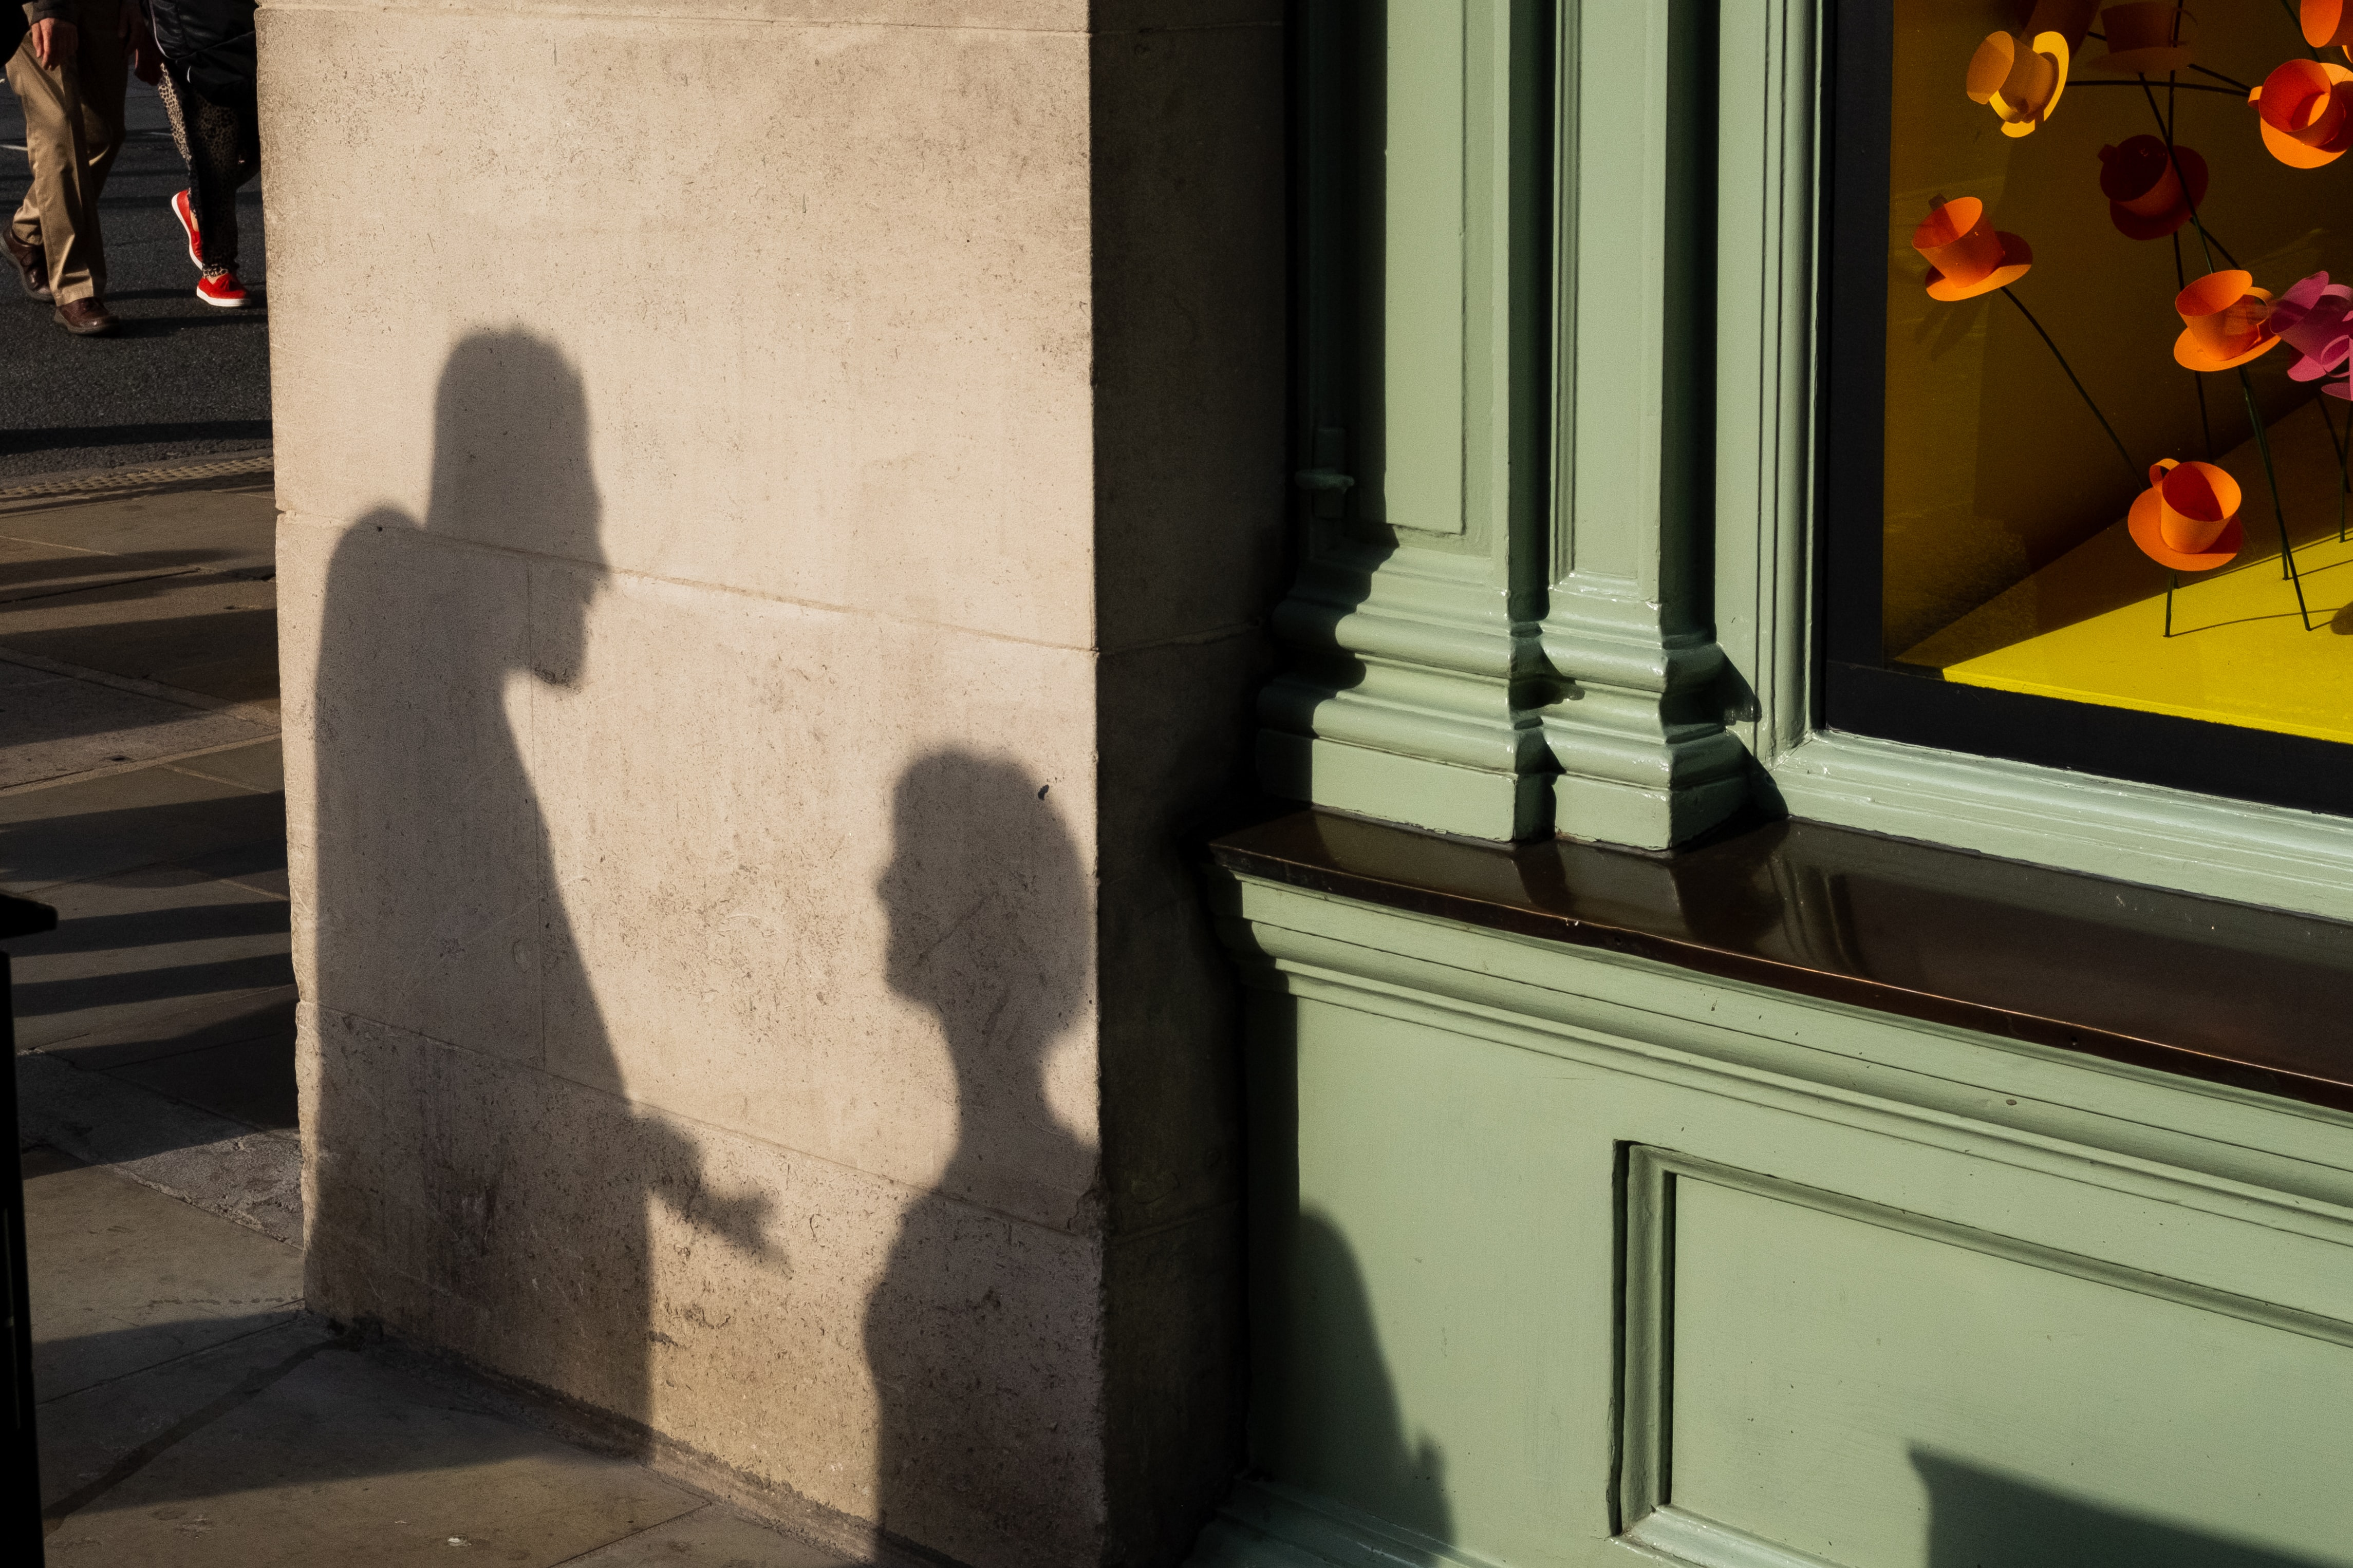 shadows of people reflecting on wall